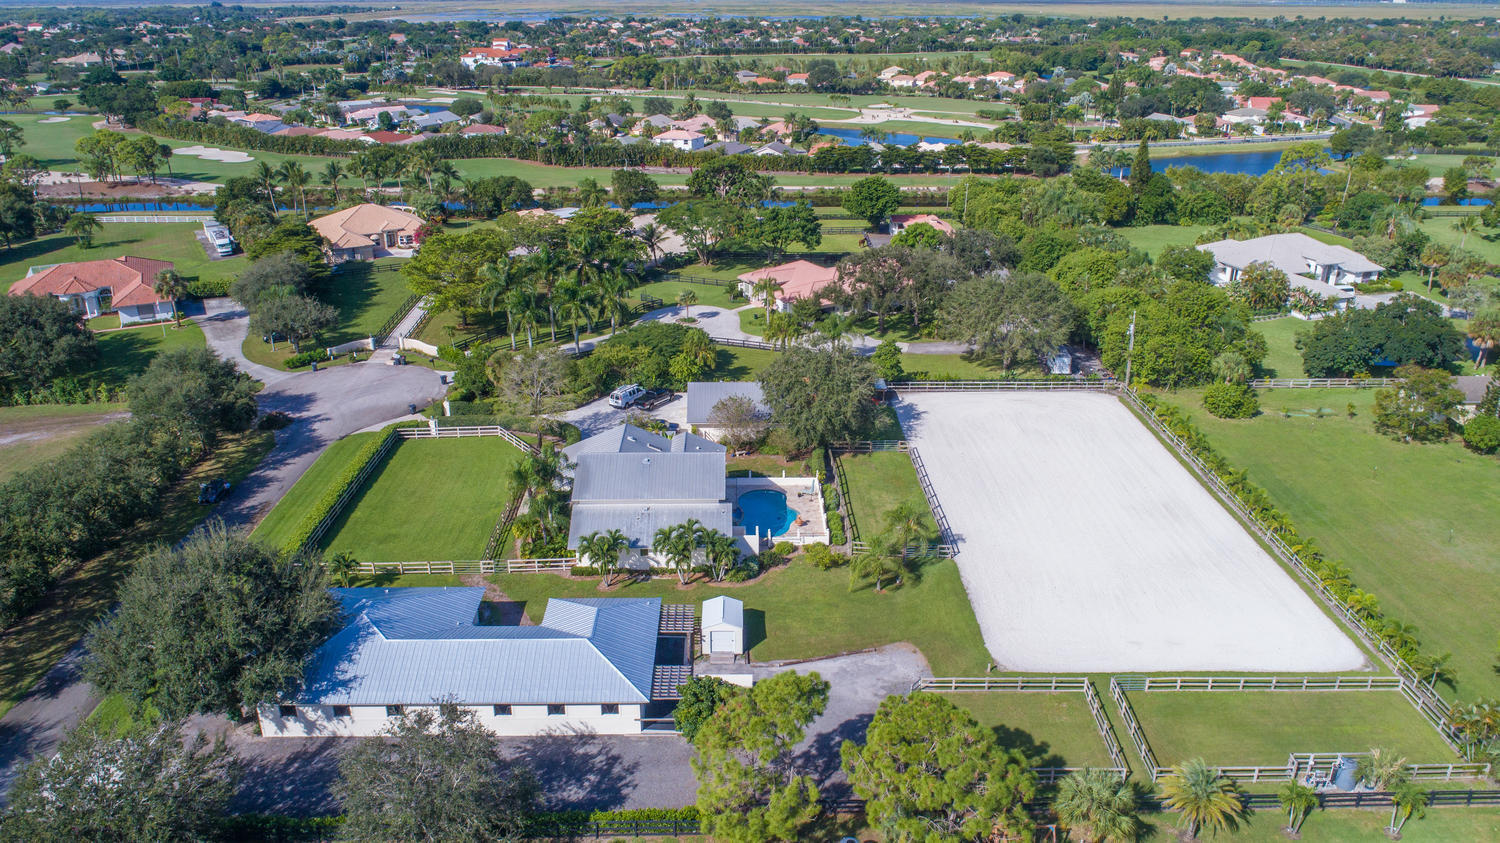 14965 Oatland Court, Wellington, Florida 33414, 2 Bedrooms Bedrooms, ,2 BathroomsBathrooms,Barn,For Rent,Oatland,1,RX-10403298